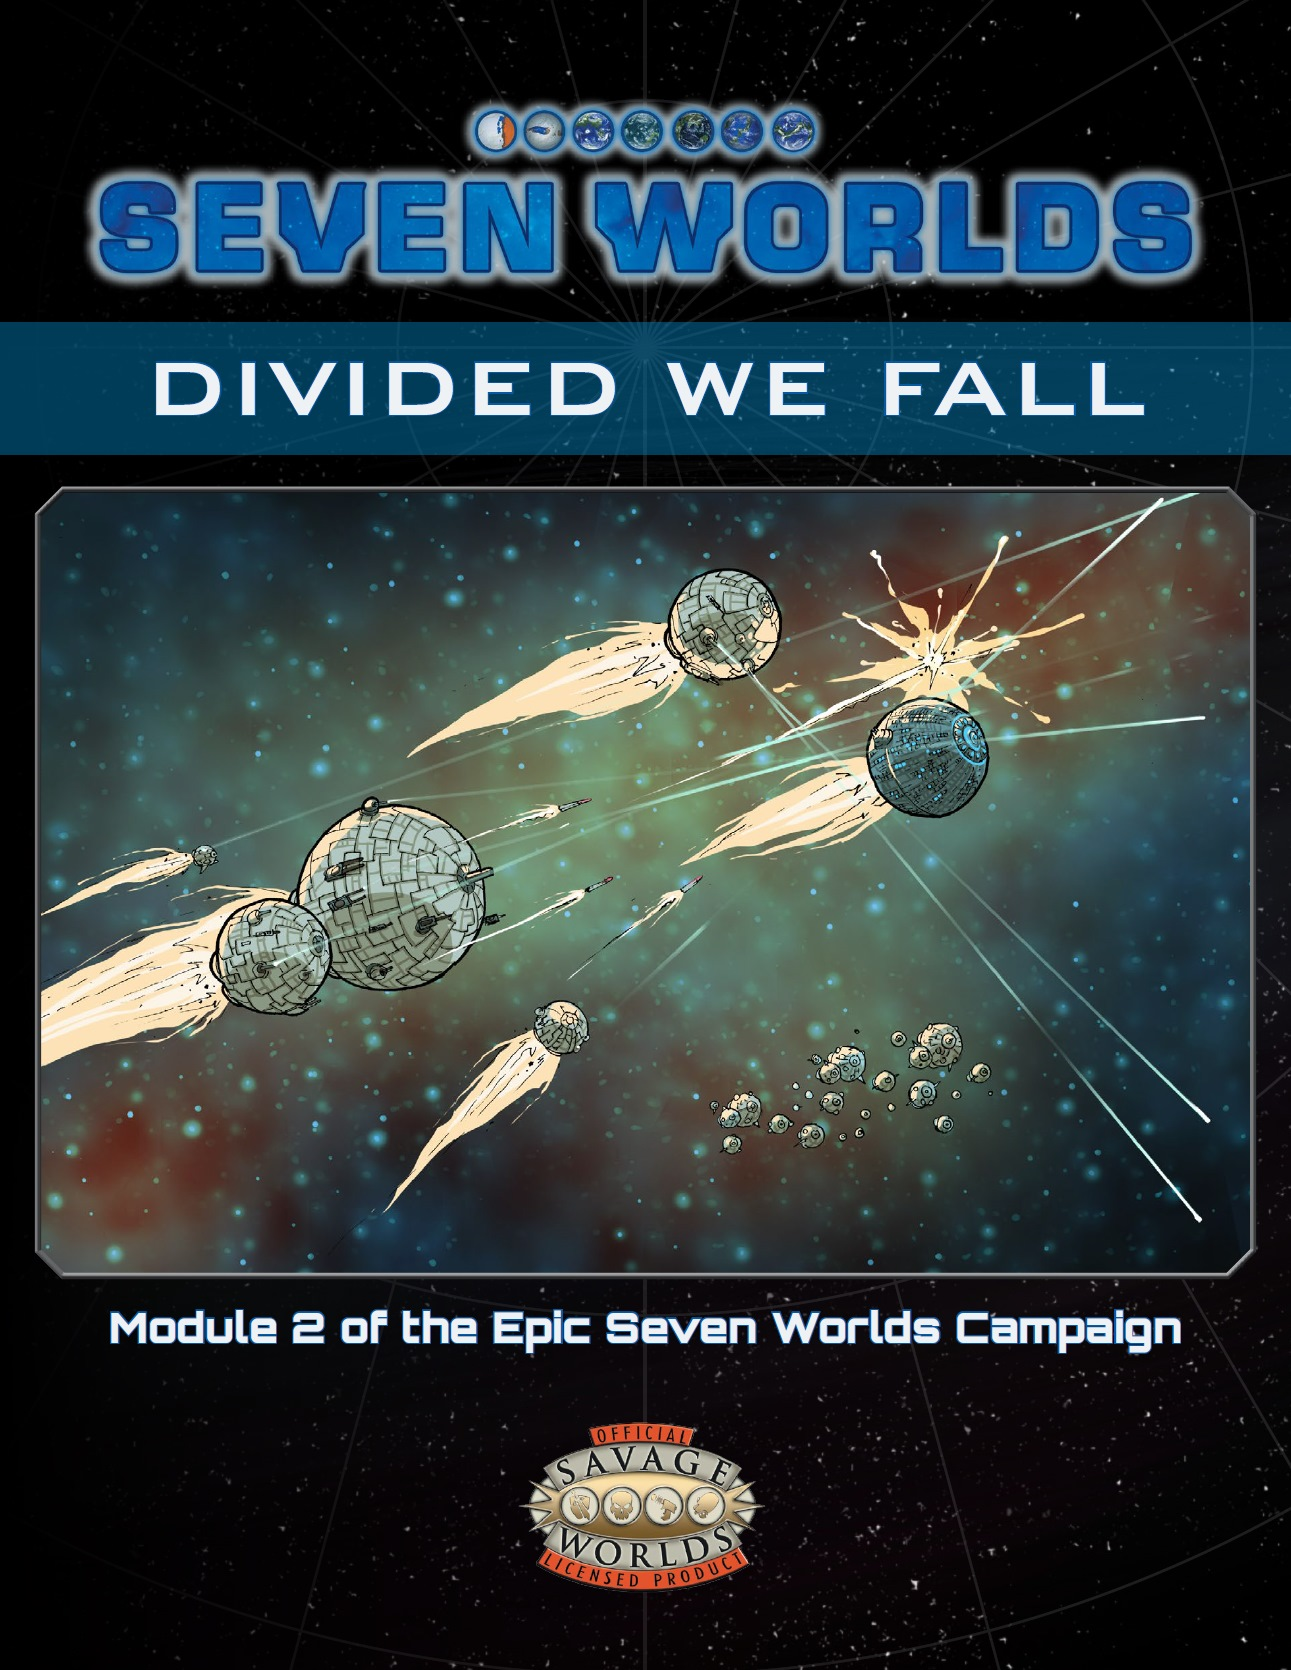 Module 2- Divided We Fall